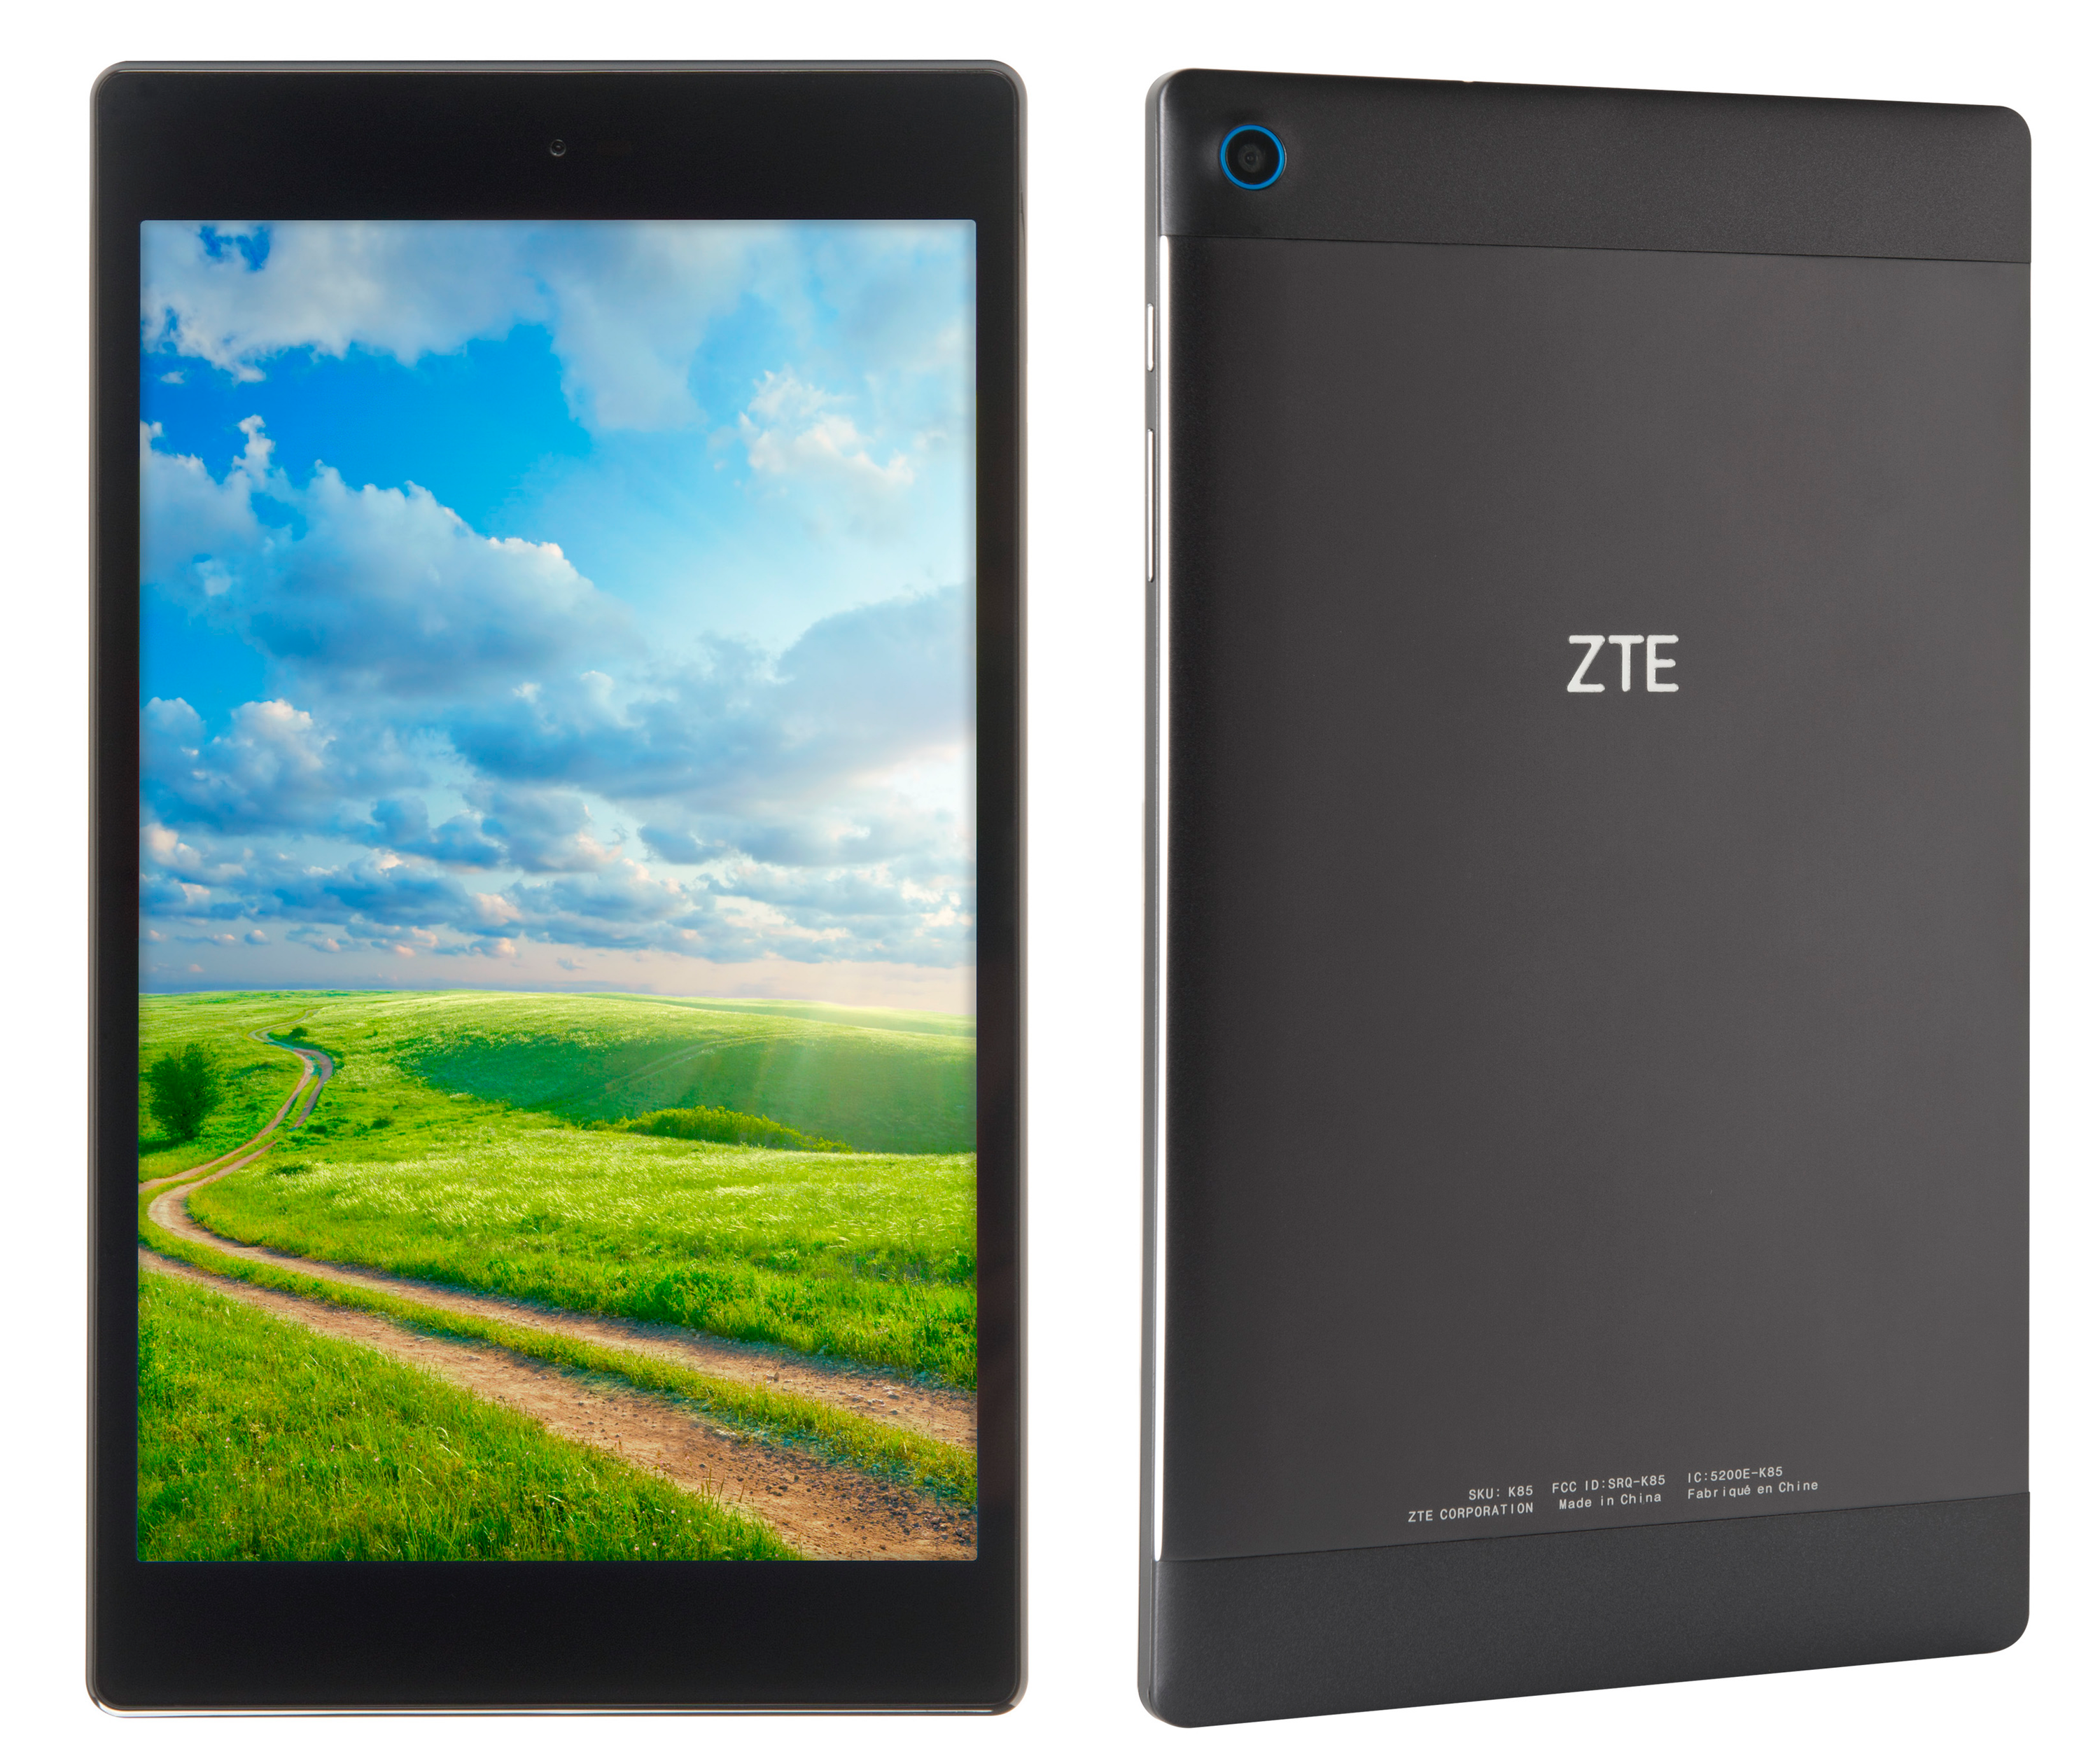 volunteer zte tablet format following details may